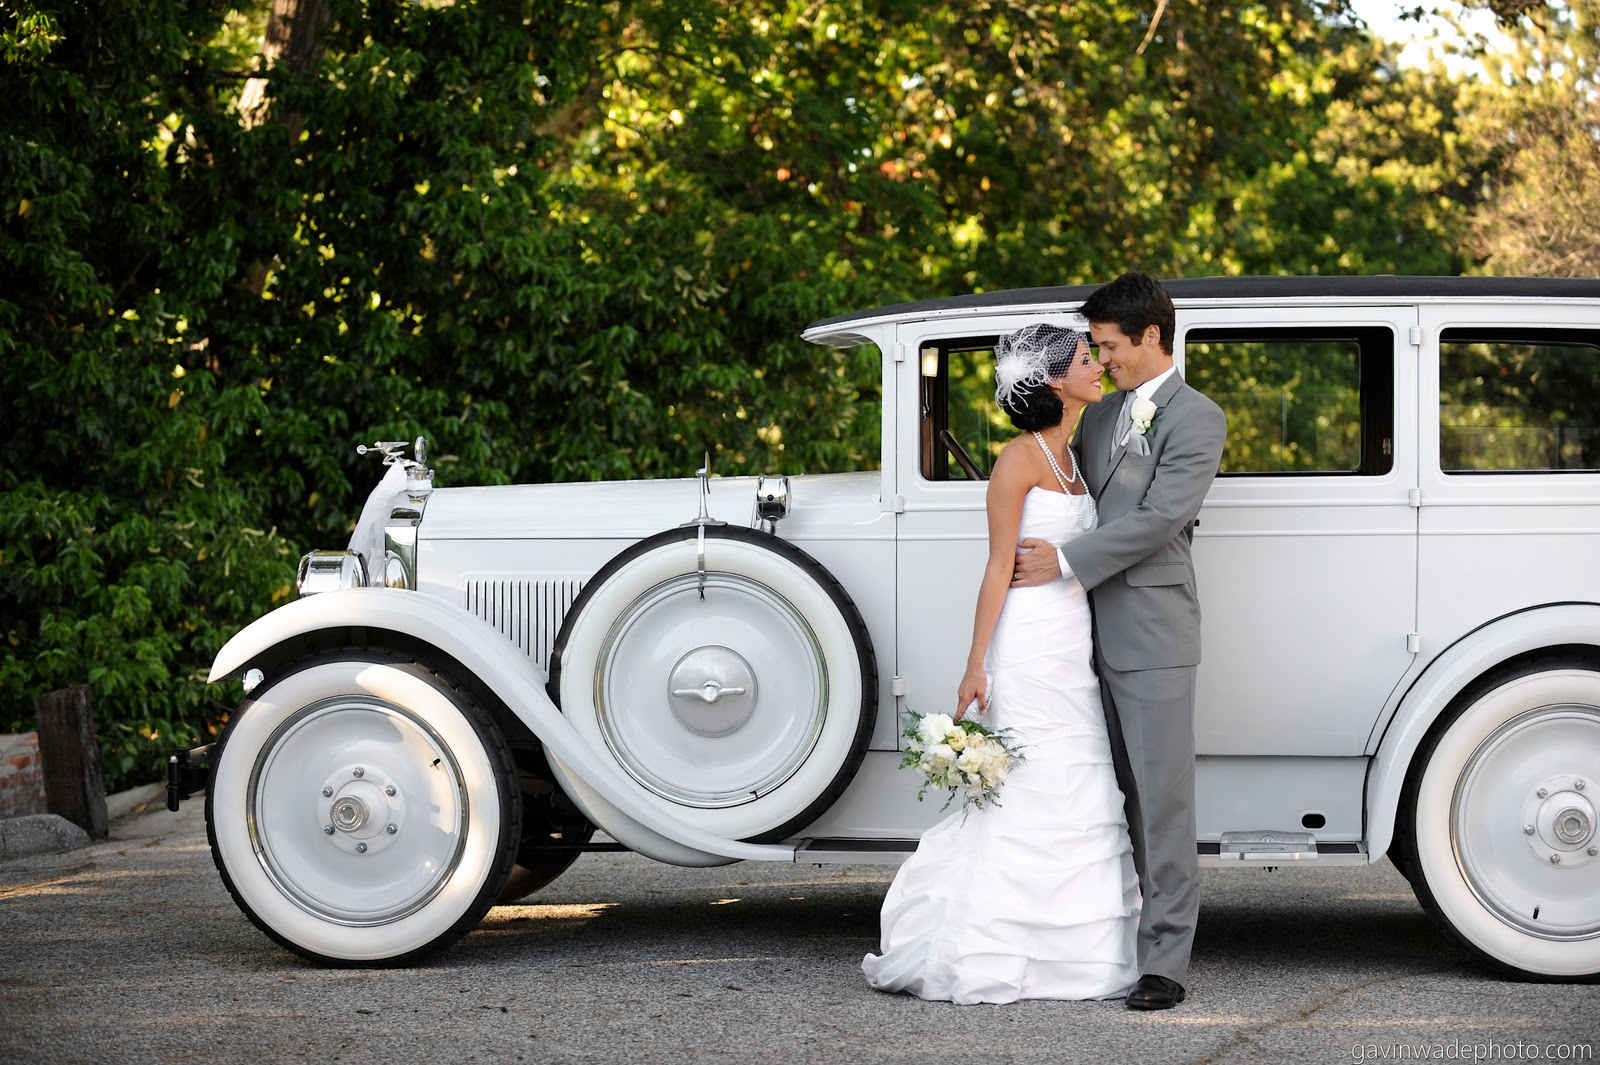 The Great Gatsby wedding inspiration   The Merry Bride